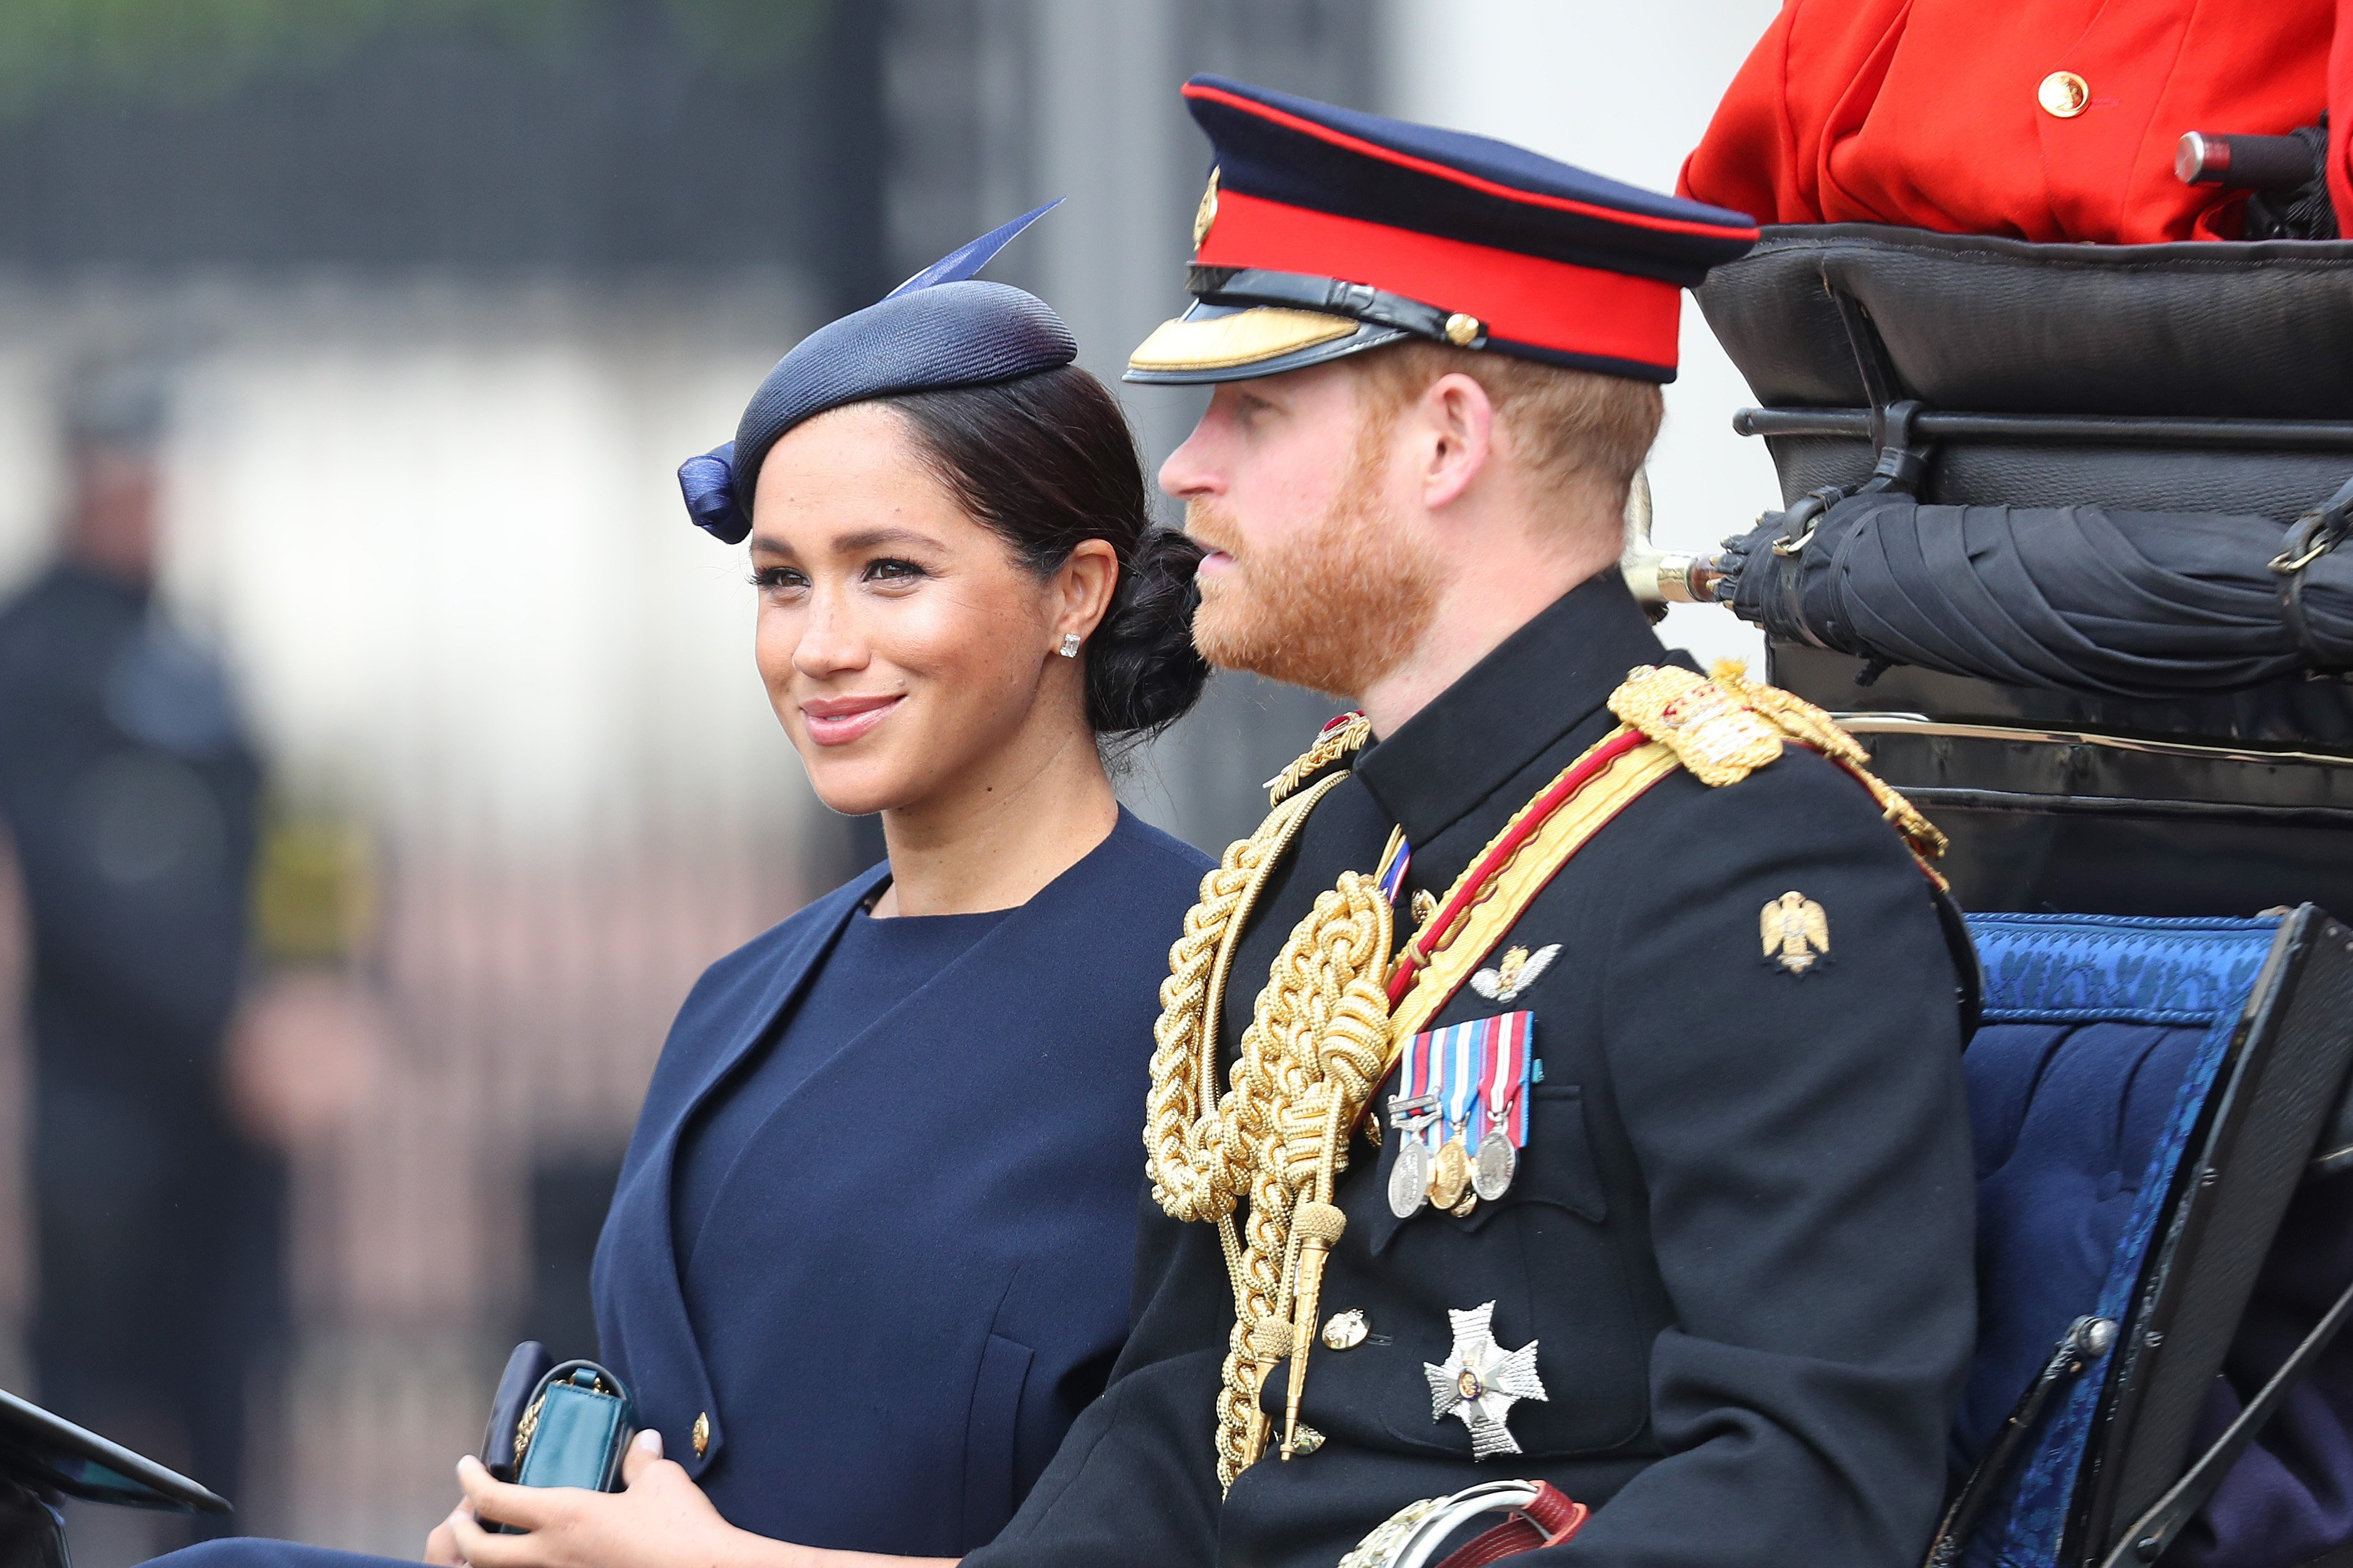 Meghan Markle and Prince Harry arriving at the Buckingham Palace for Trooping the Colour | Photo: Getty Images